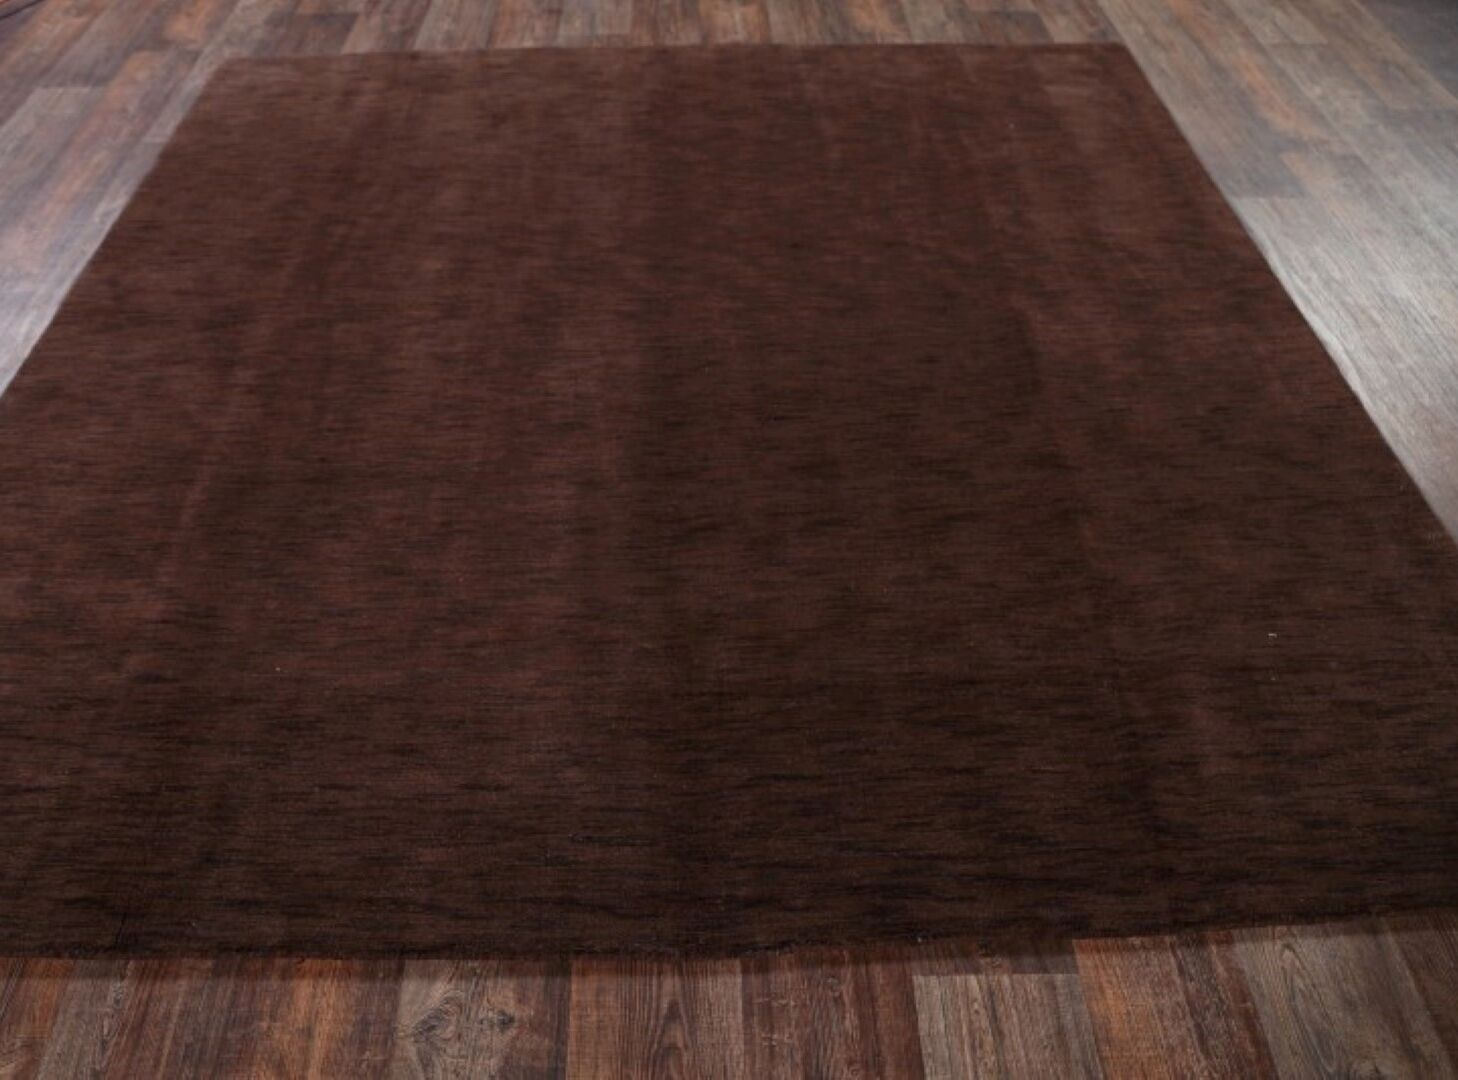 One-of-a-Kind Branch Dark Gabbeh Oriental Hand-Knotted Wool Brown Area Rug Rug Size: Rectangle 8' 1